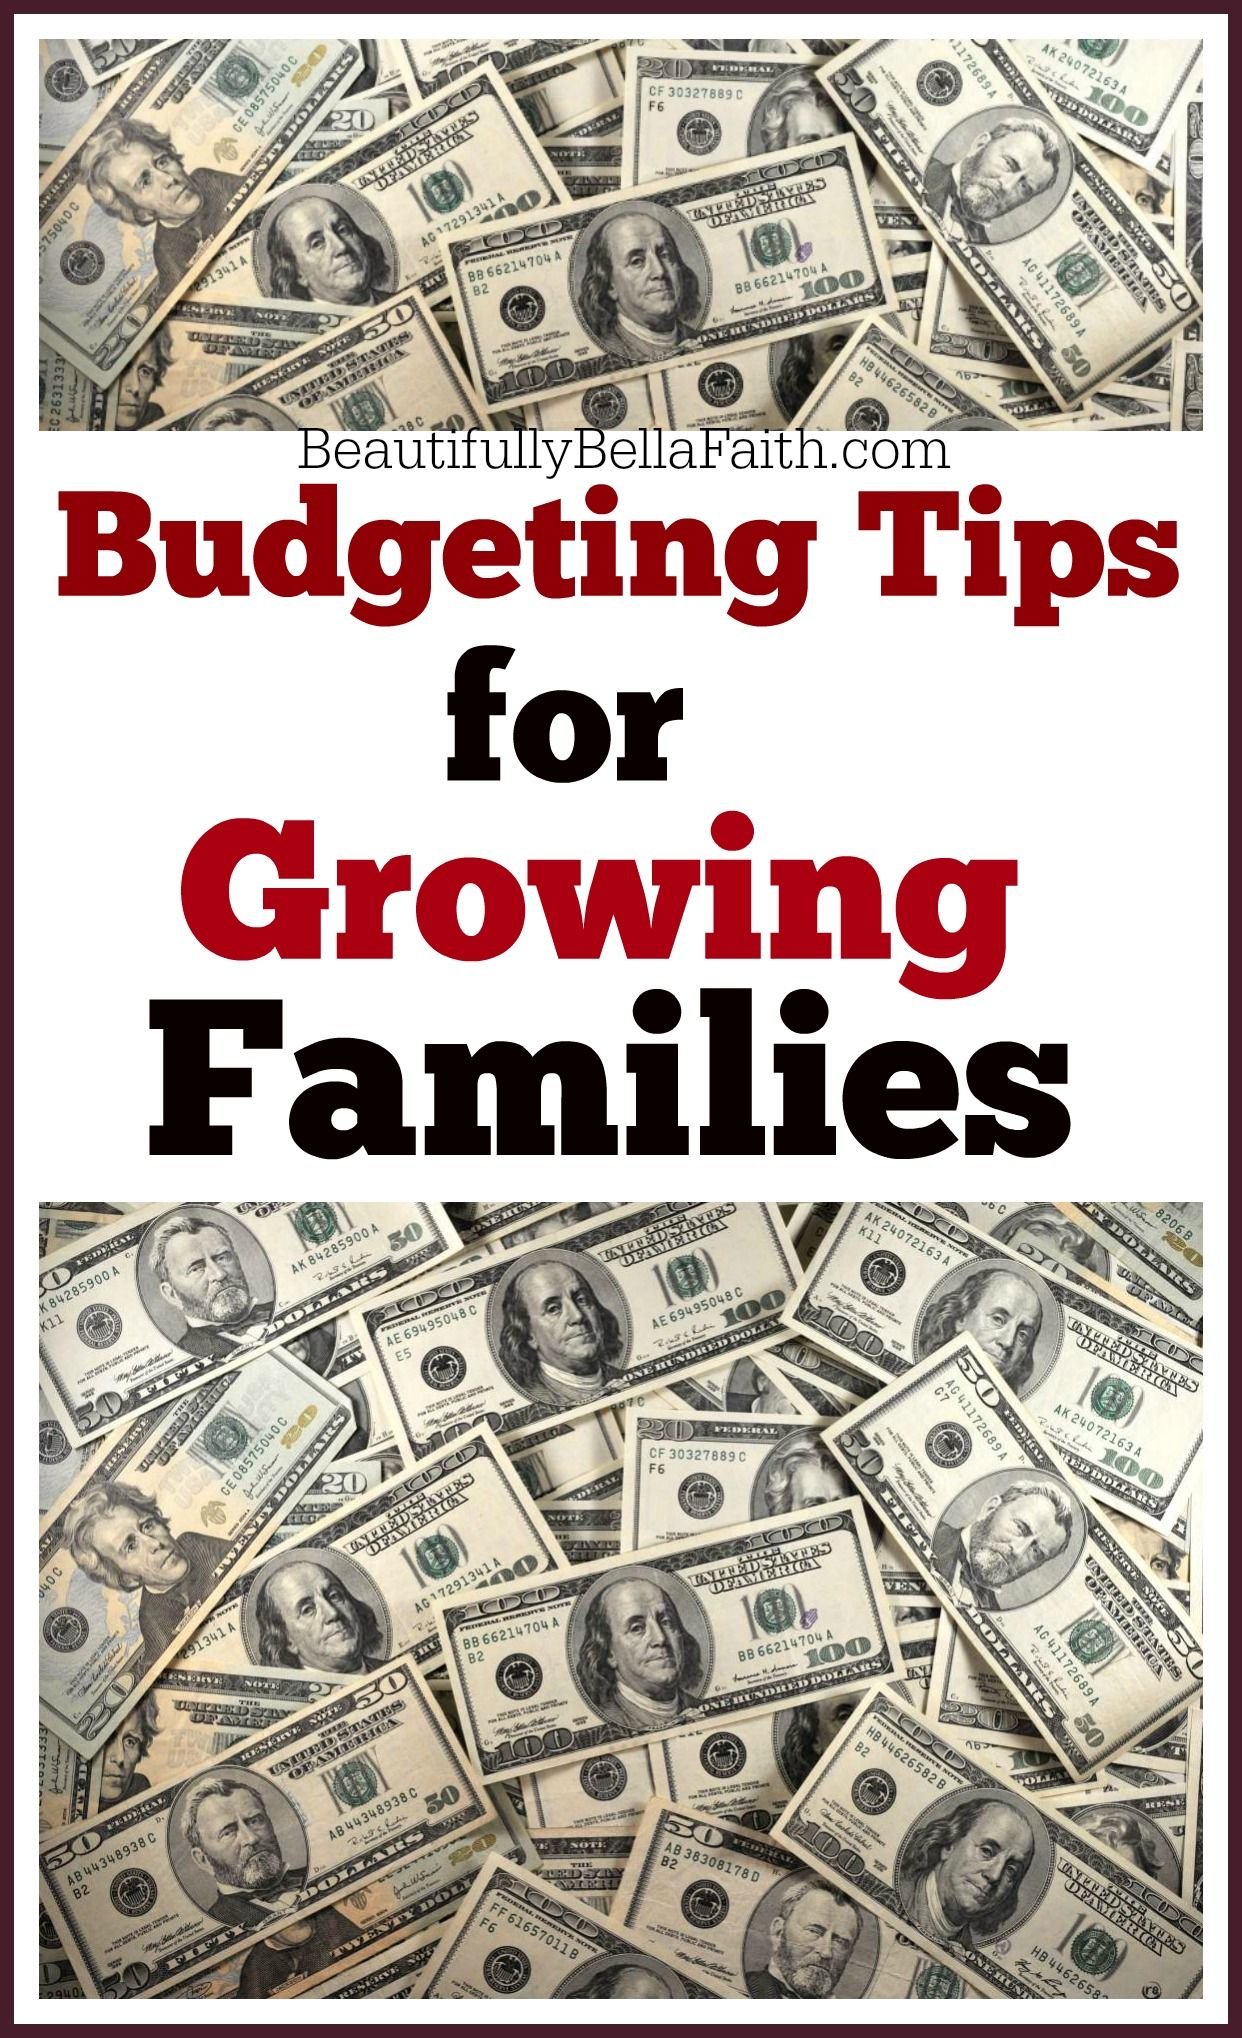 Budgeting Tips For Growing Families